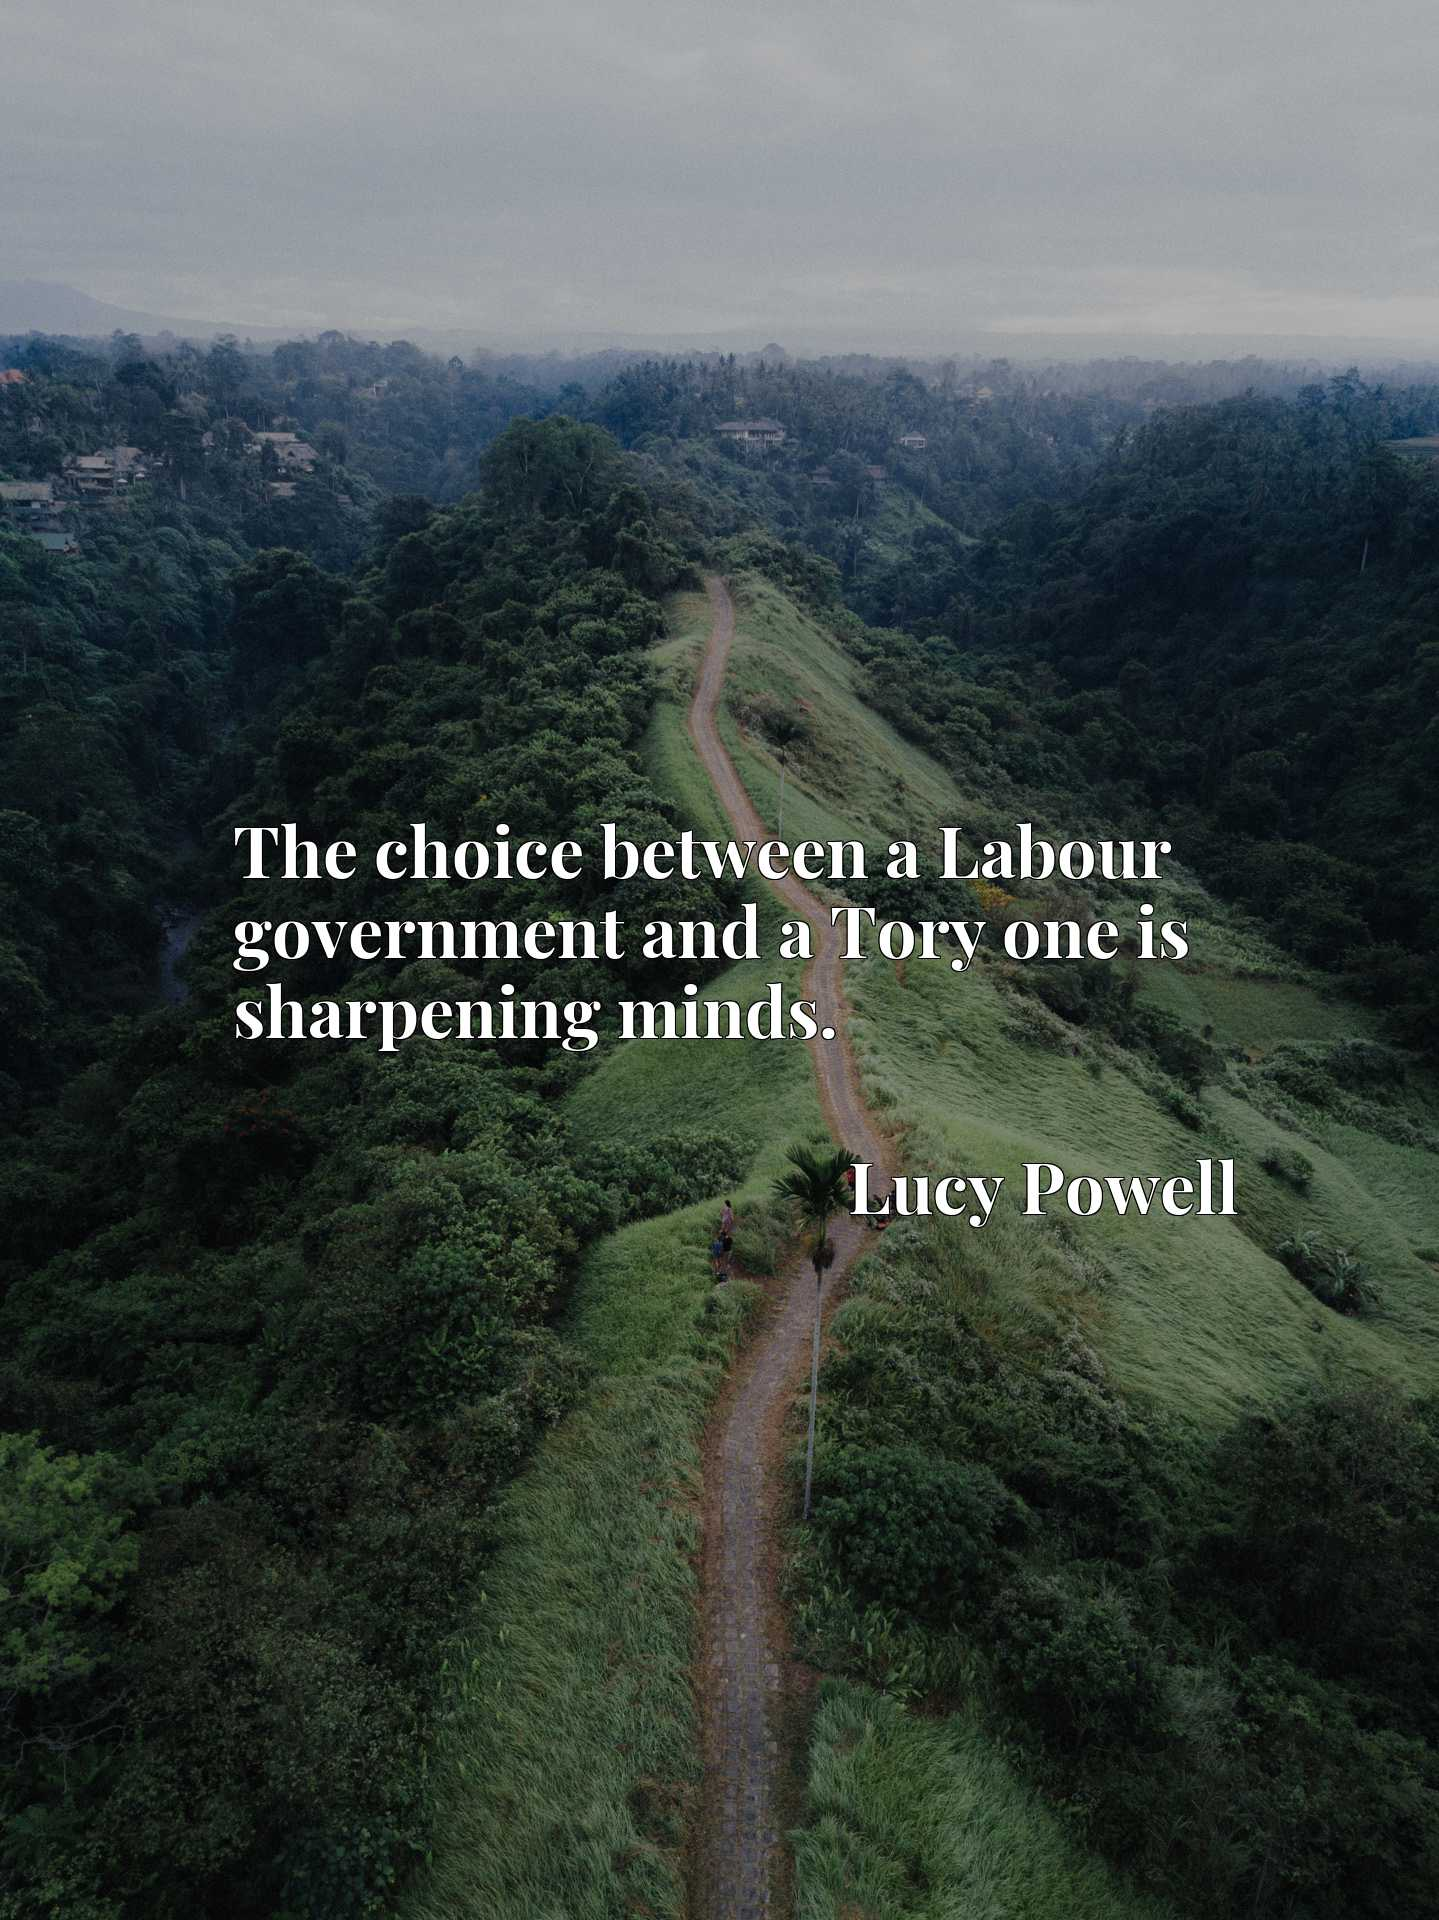 The choice between a Labour government and a Tory one is sharpening minds.